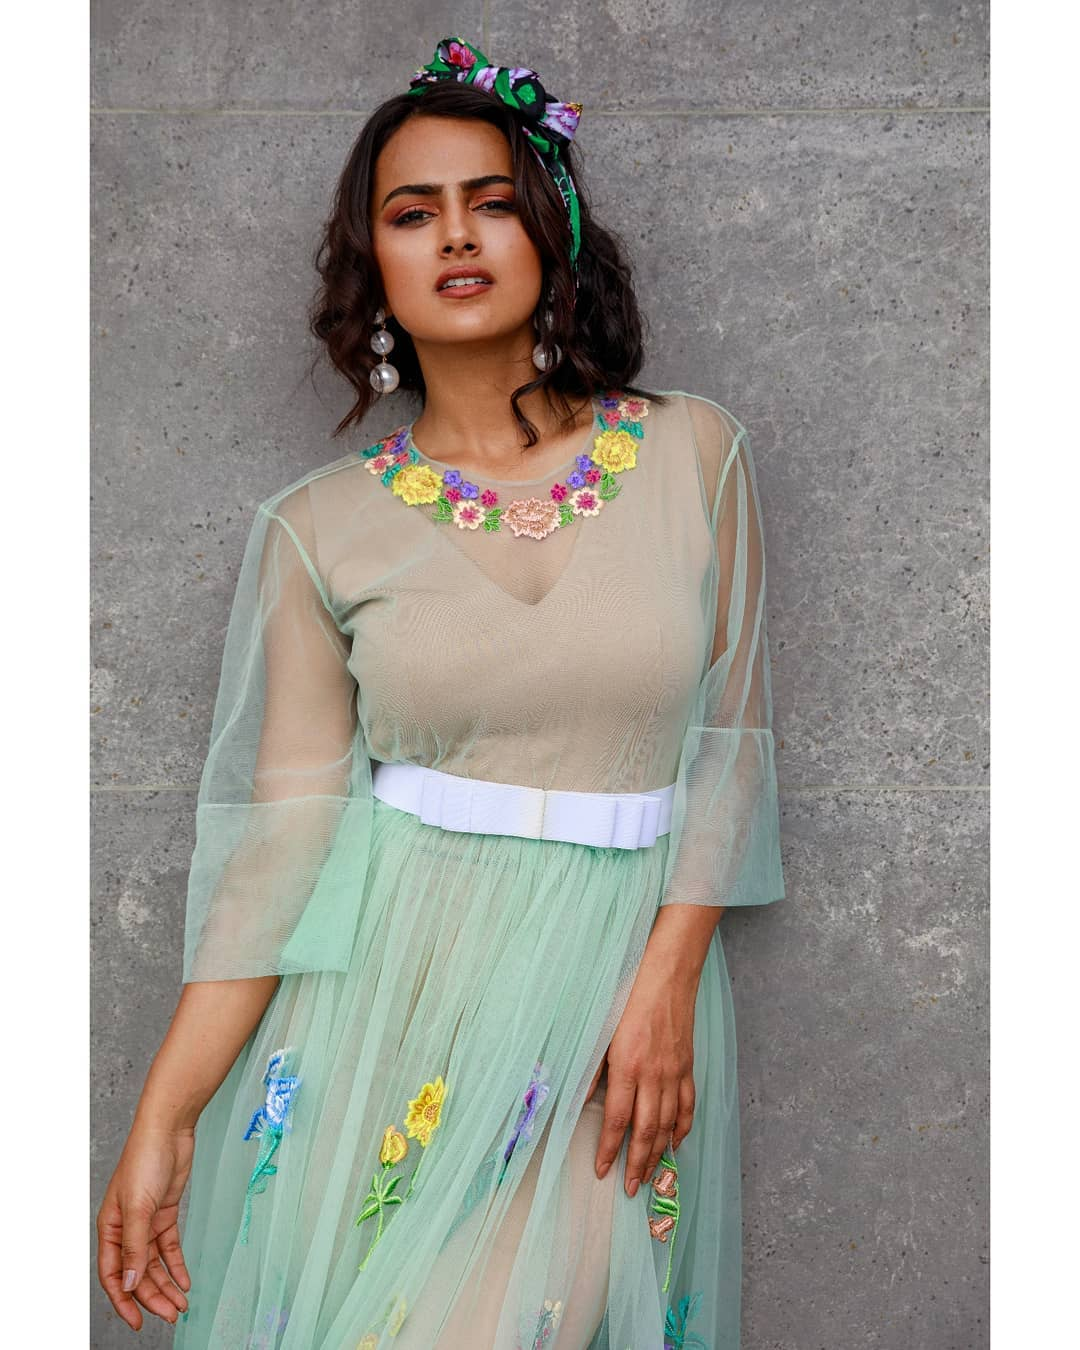 Shraddha Srinath Picture, Shraddha Srinath Beautiful Pics, Shraddha, Srinath, Shraddha Srinath, Shraddha Srinath Photos, south indian actress photo, hot image, hot photo, hot actress, indian hot images, hot images of actress, actress hot photos, indian actress pics, actress images, indian hot photos, indian actress photos, heroine photos, hot indian actress, indian actress images, hindi actress photos, actress gallery, hindi actress hot photos, telugu heroine hot photos, telugu heroine photos, tamil hot photos, south heroine, indian actress hot images, indian actress hot picture, south indian photo, south indian actress name list with photo, indian actress hot pics, south ki picture, indian heroine photo, south indian hd photo, telugu actress photos, actress pics, south indian heroine, telugu actress images, south indian picture, hot bollywood actress, hot wallpaper, tamil actress photos, hot actress wallpaper, hot pics, hot pic, hot photos, indian girl, actress photo gallery, Jersey Actress, Jersey Actress Photo, Jersey Movie Actress Photo, Jersey Movie Actress.  Shraddha Srinath HD, Gorgeous, High Quality, Sexy, Hot, Lovely, Cute, Sweet, Awesome, unseen, Viral, Oops,  Smart, Beautiful Pics of Shraddha Srinath for Whatsapp, Facebook profiles free download.  Shraddha Srinath Unique photos collection, Shraddha Srinath Hot Pics, Shraddha Srinath Awesome Pics, Snaps for Instagram, Facebook fans  Shraddha Srinath Profile Pictures Dp Images, Display Photos for whatsapp, Facebook, instagram, Pinterest.